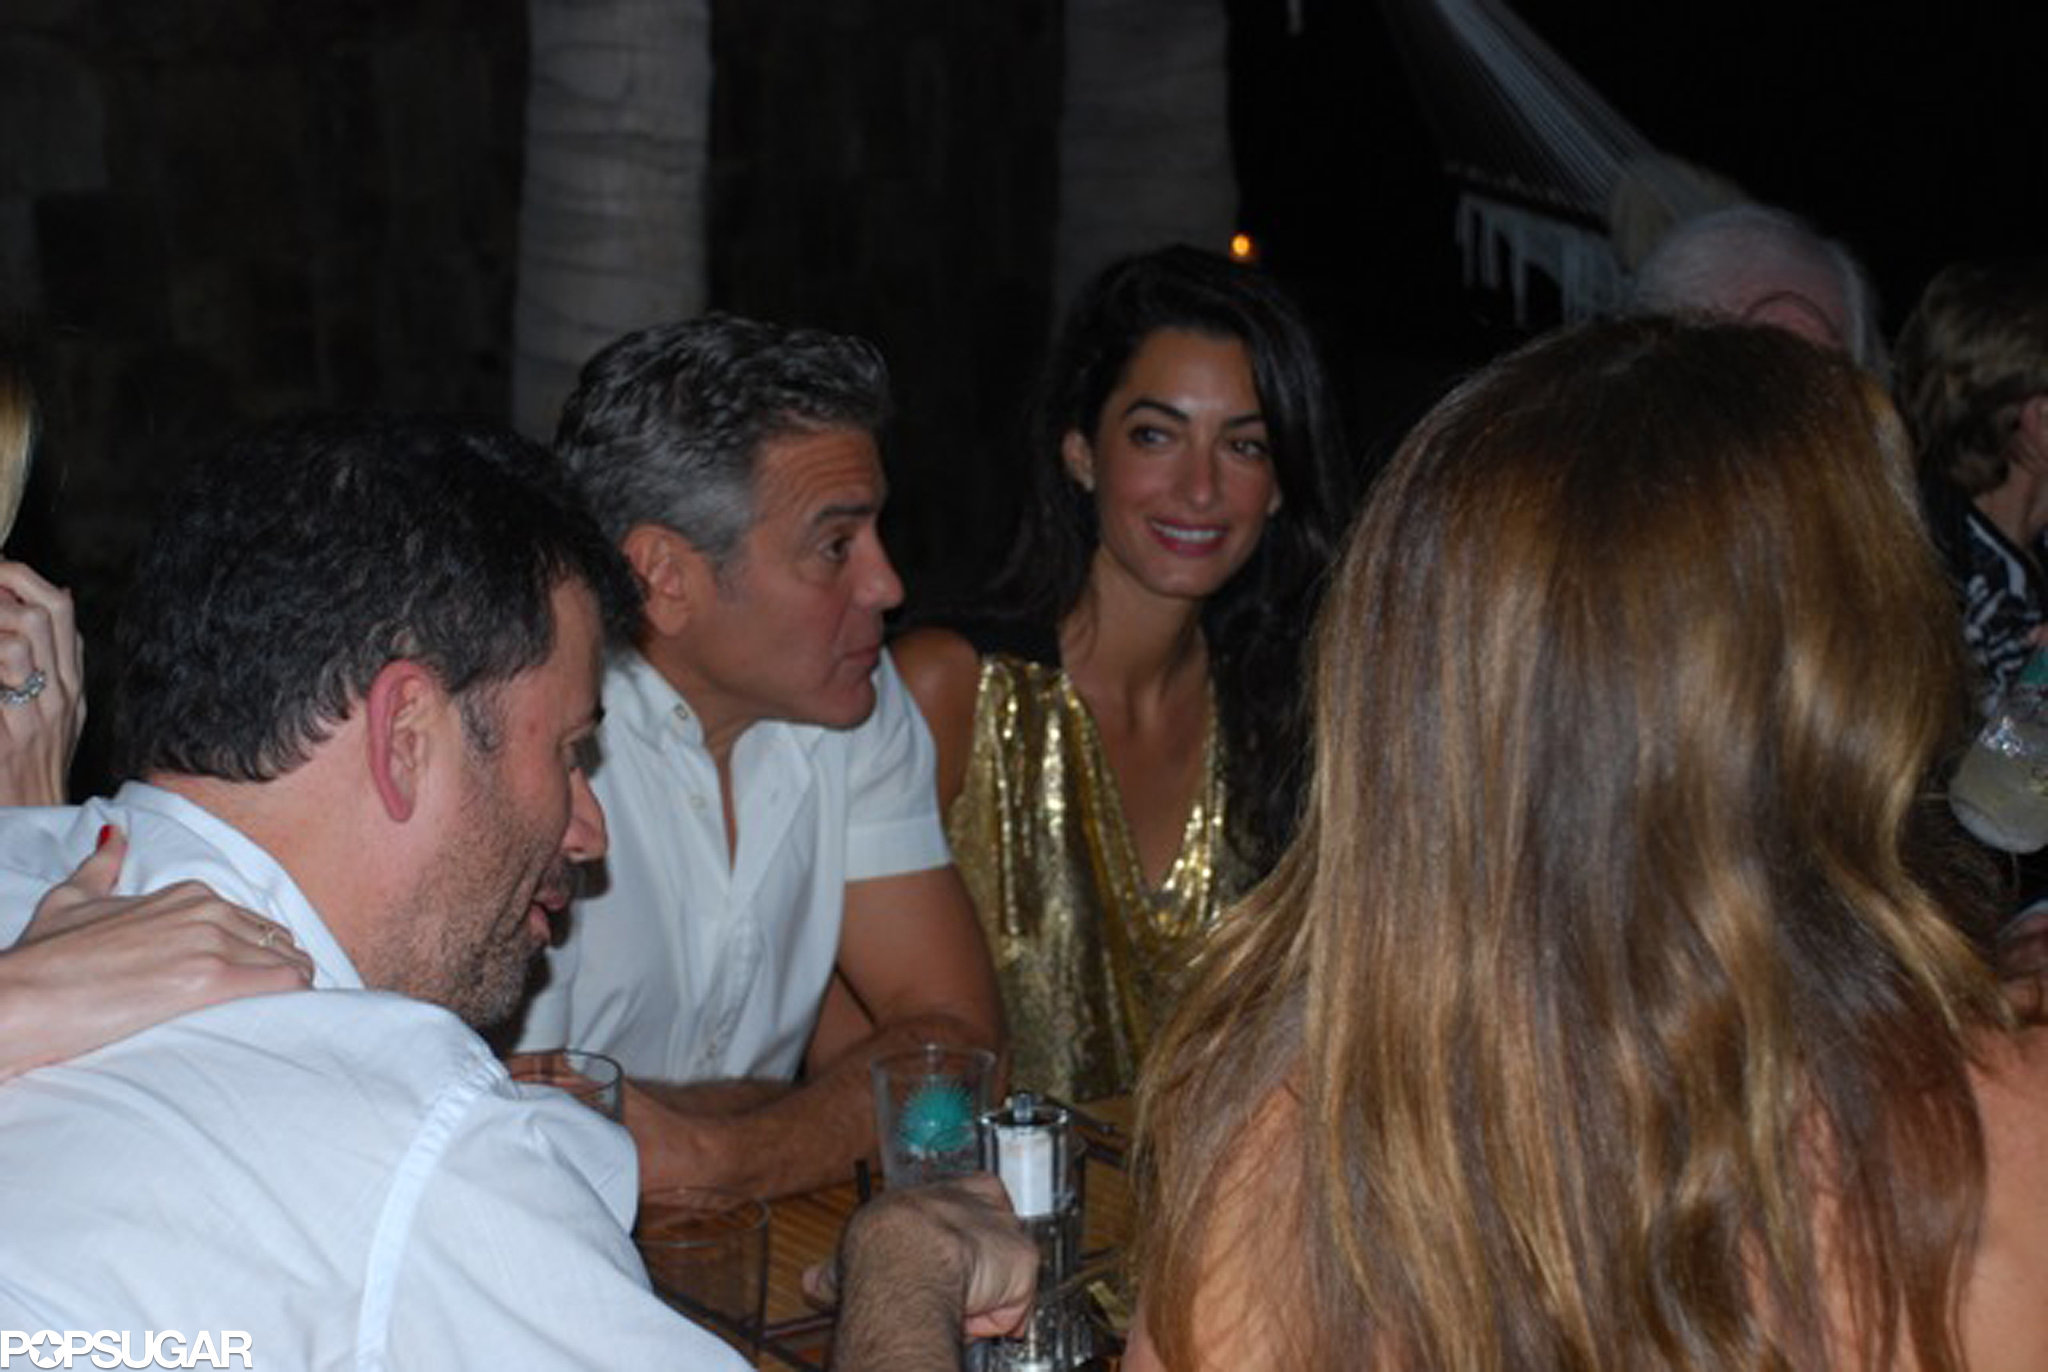 The two had a group dinner with friends during their trip to Africa in March 2014.